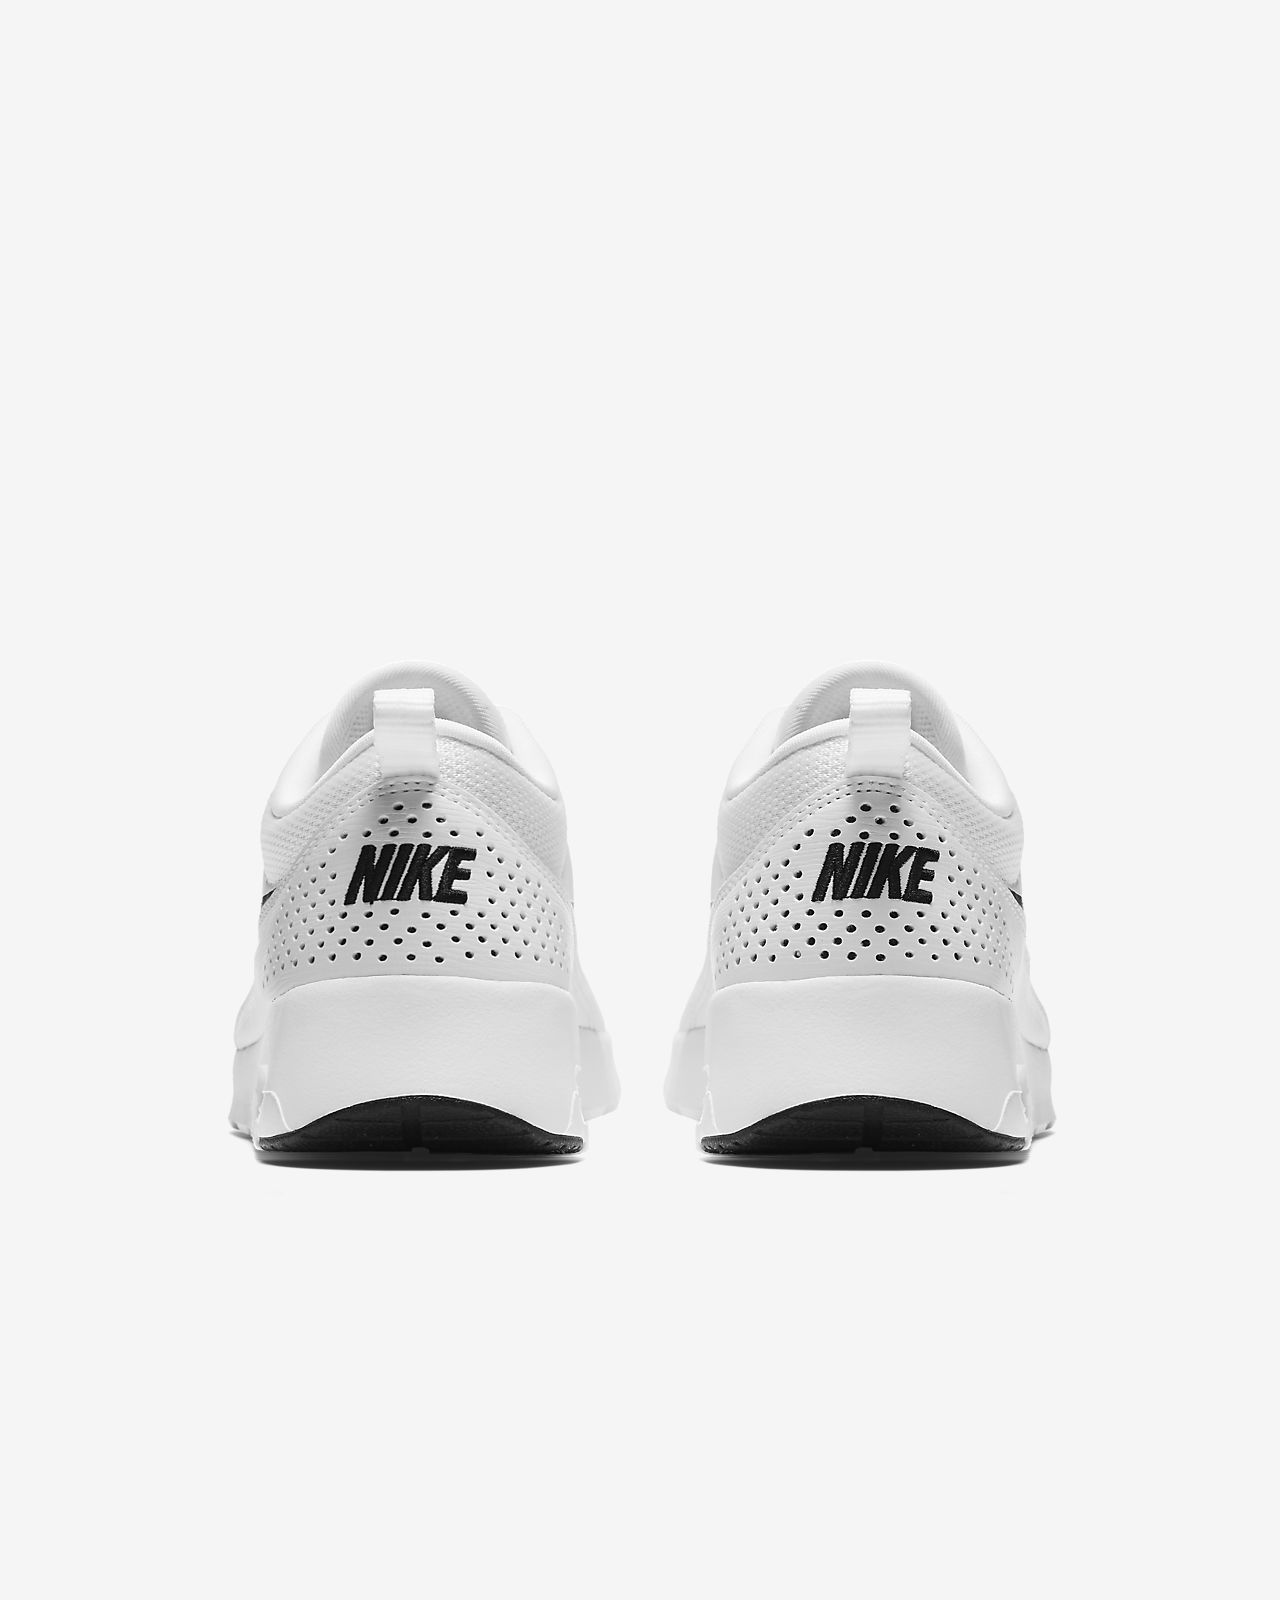 Smart Design Resonable Priced Nike Womens Air Max Thea